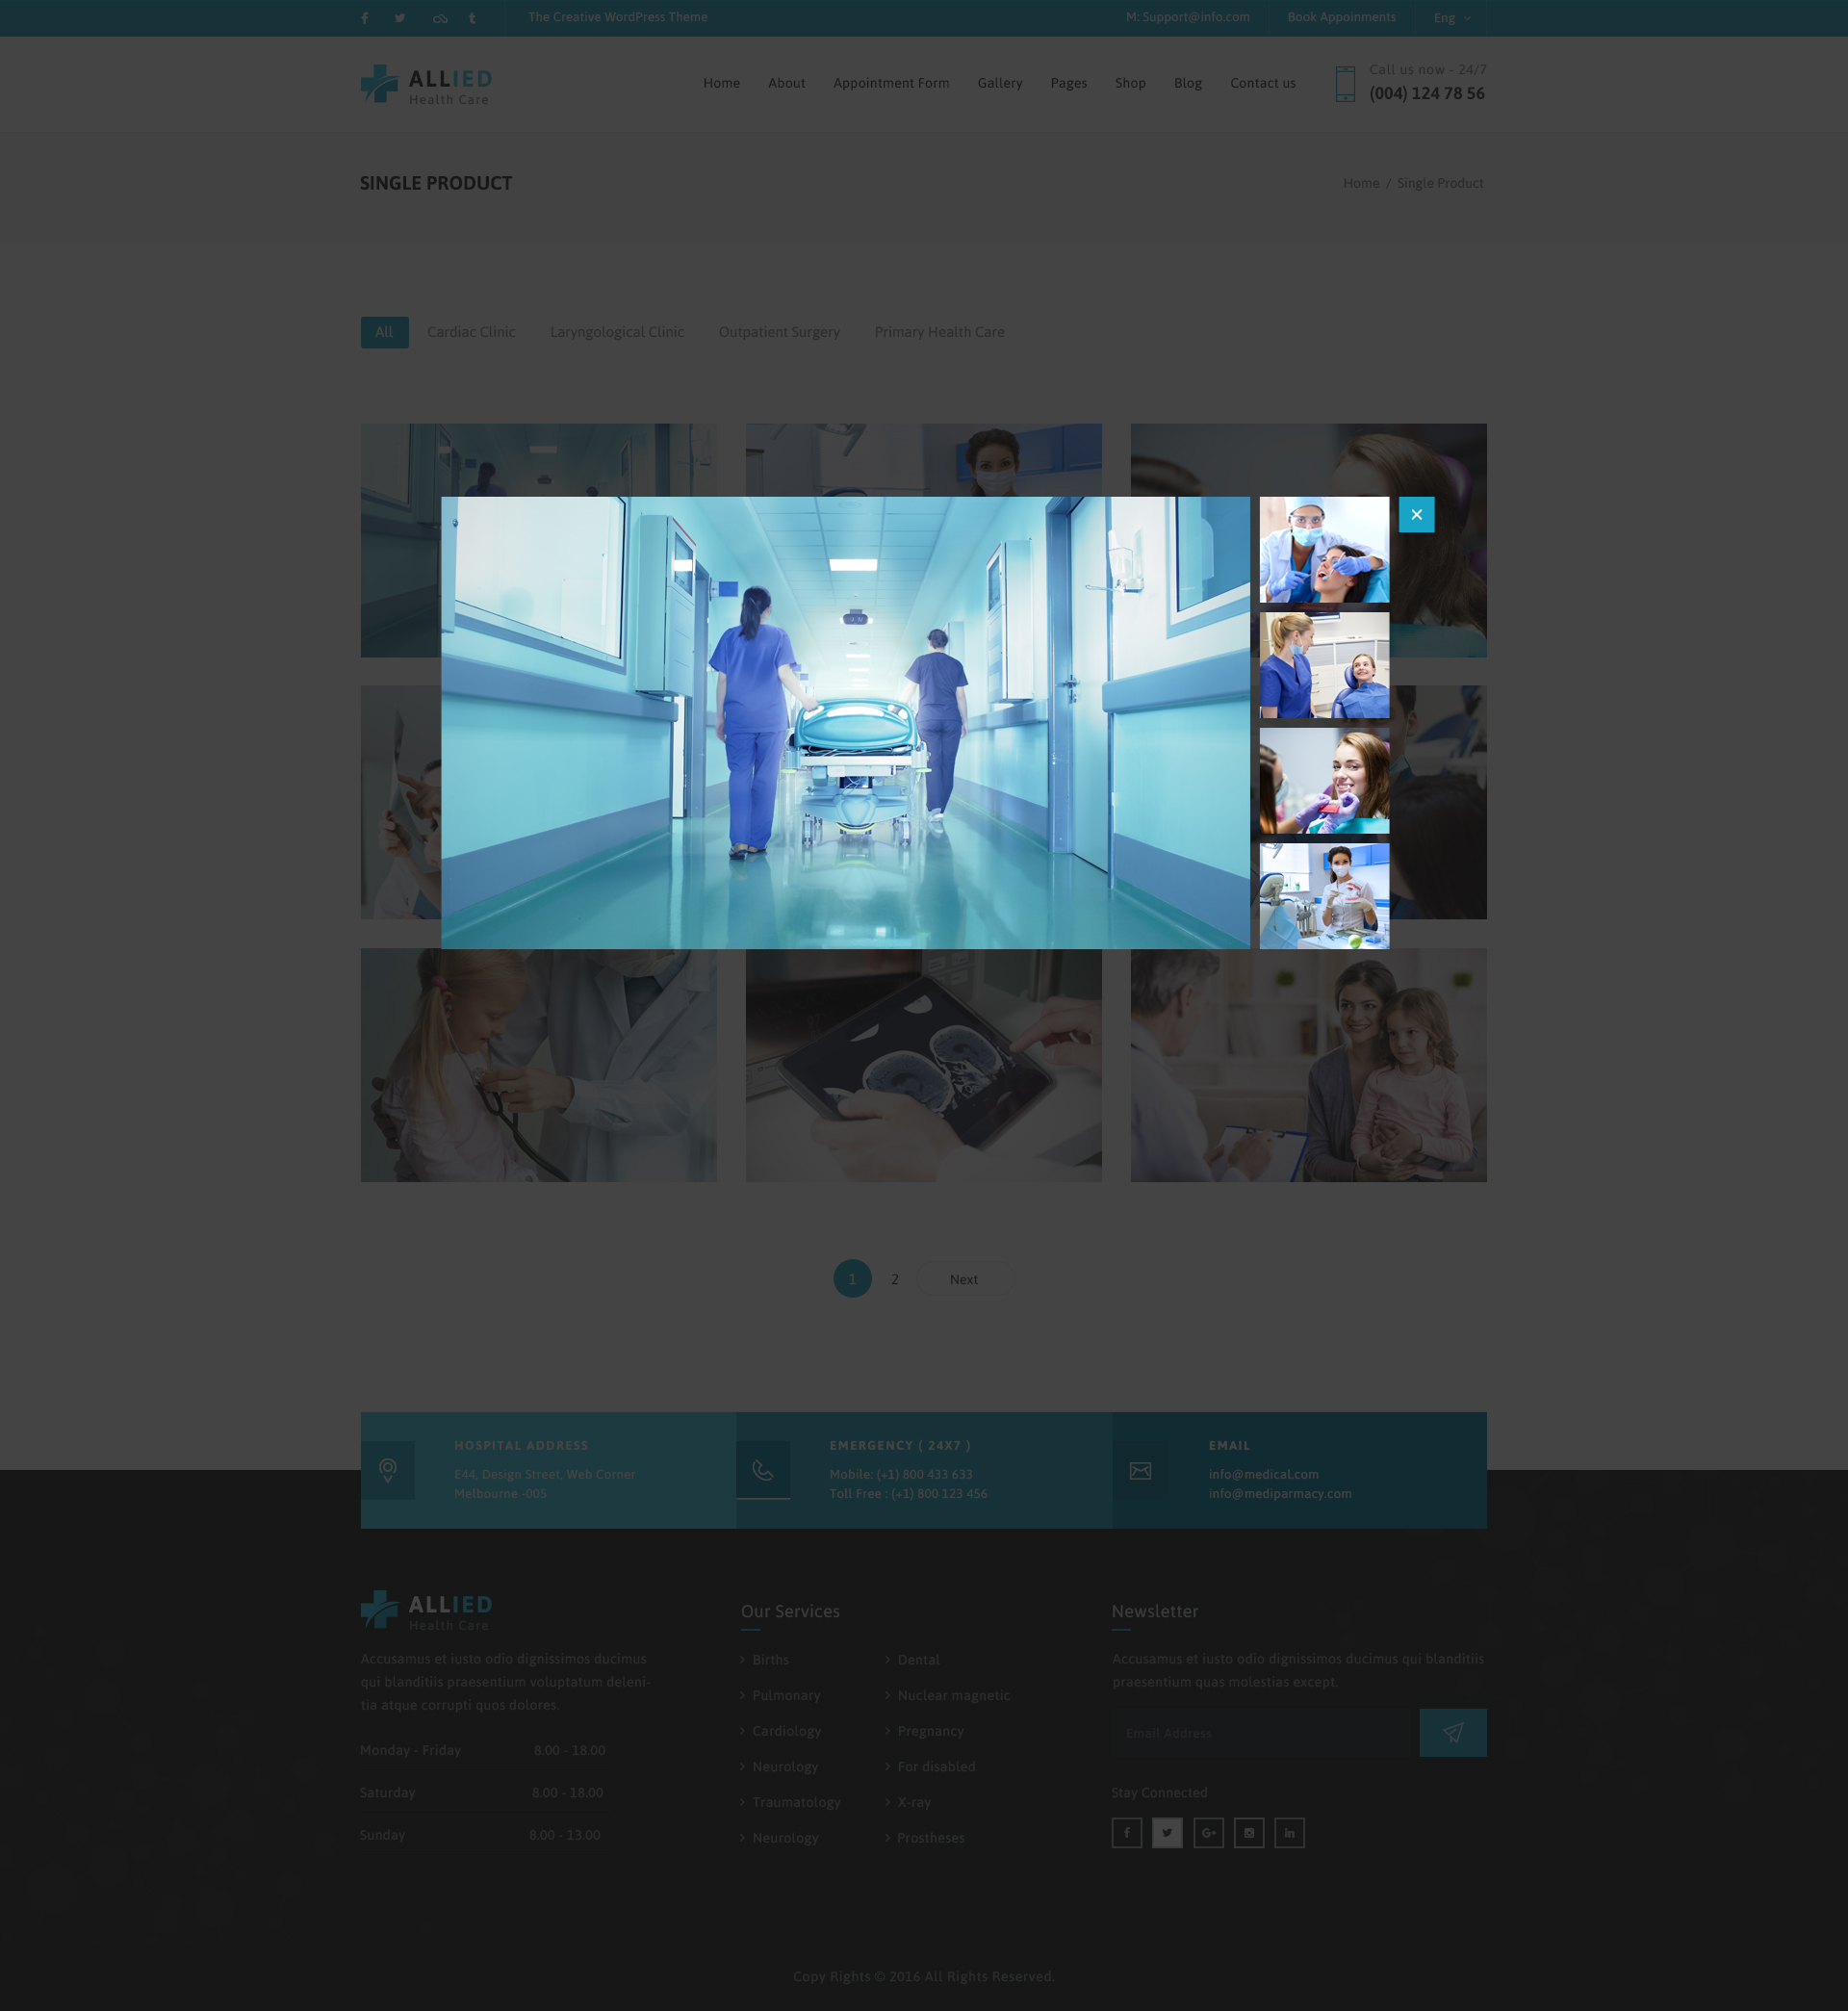 Allied health care medical psd template by ifathemes themeforest allied medical preview09 gallery popupg pronofoot35fo Choice Image